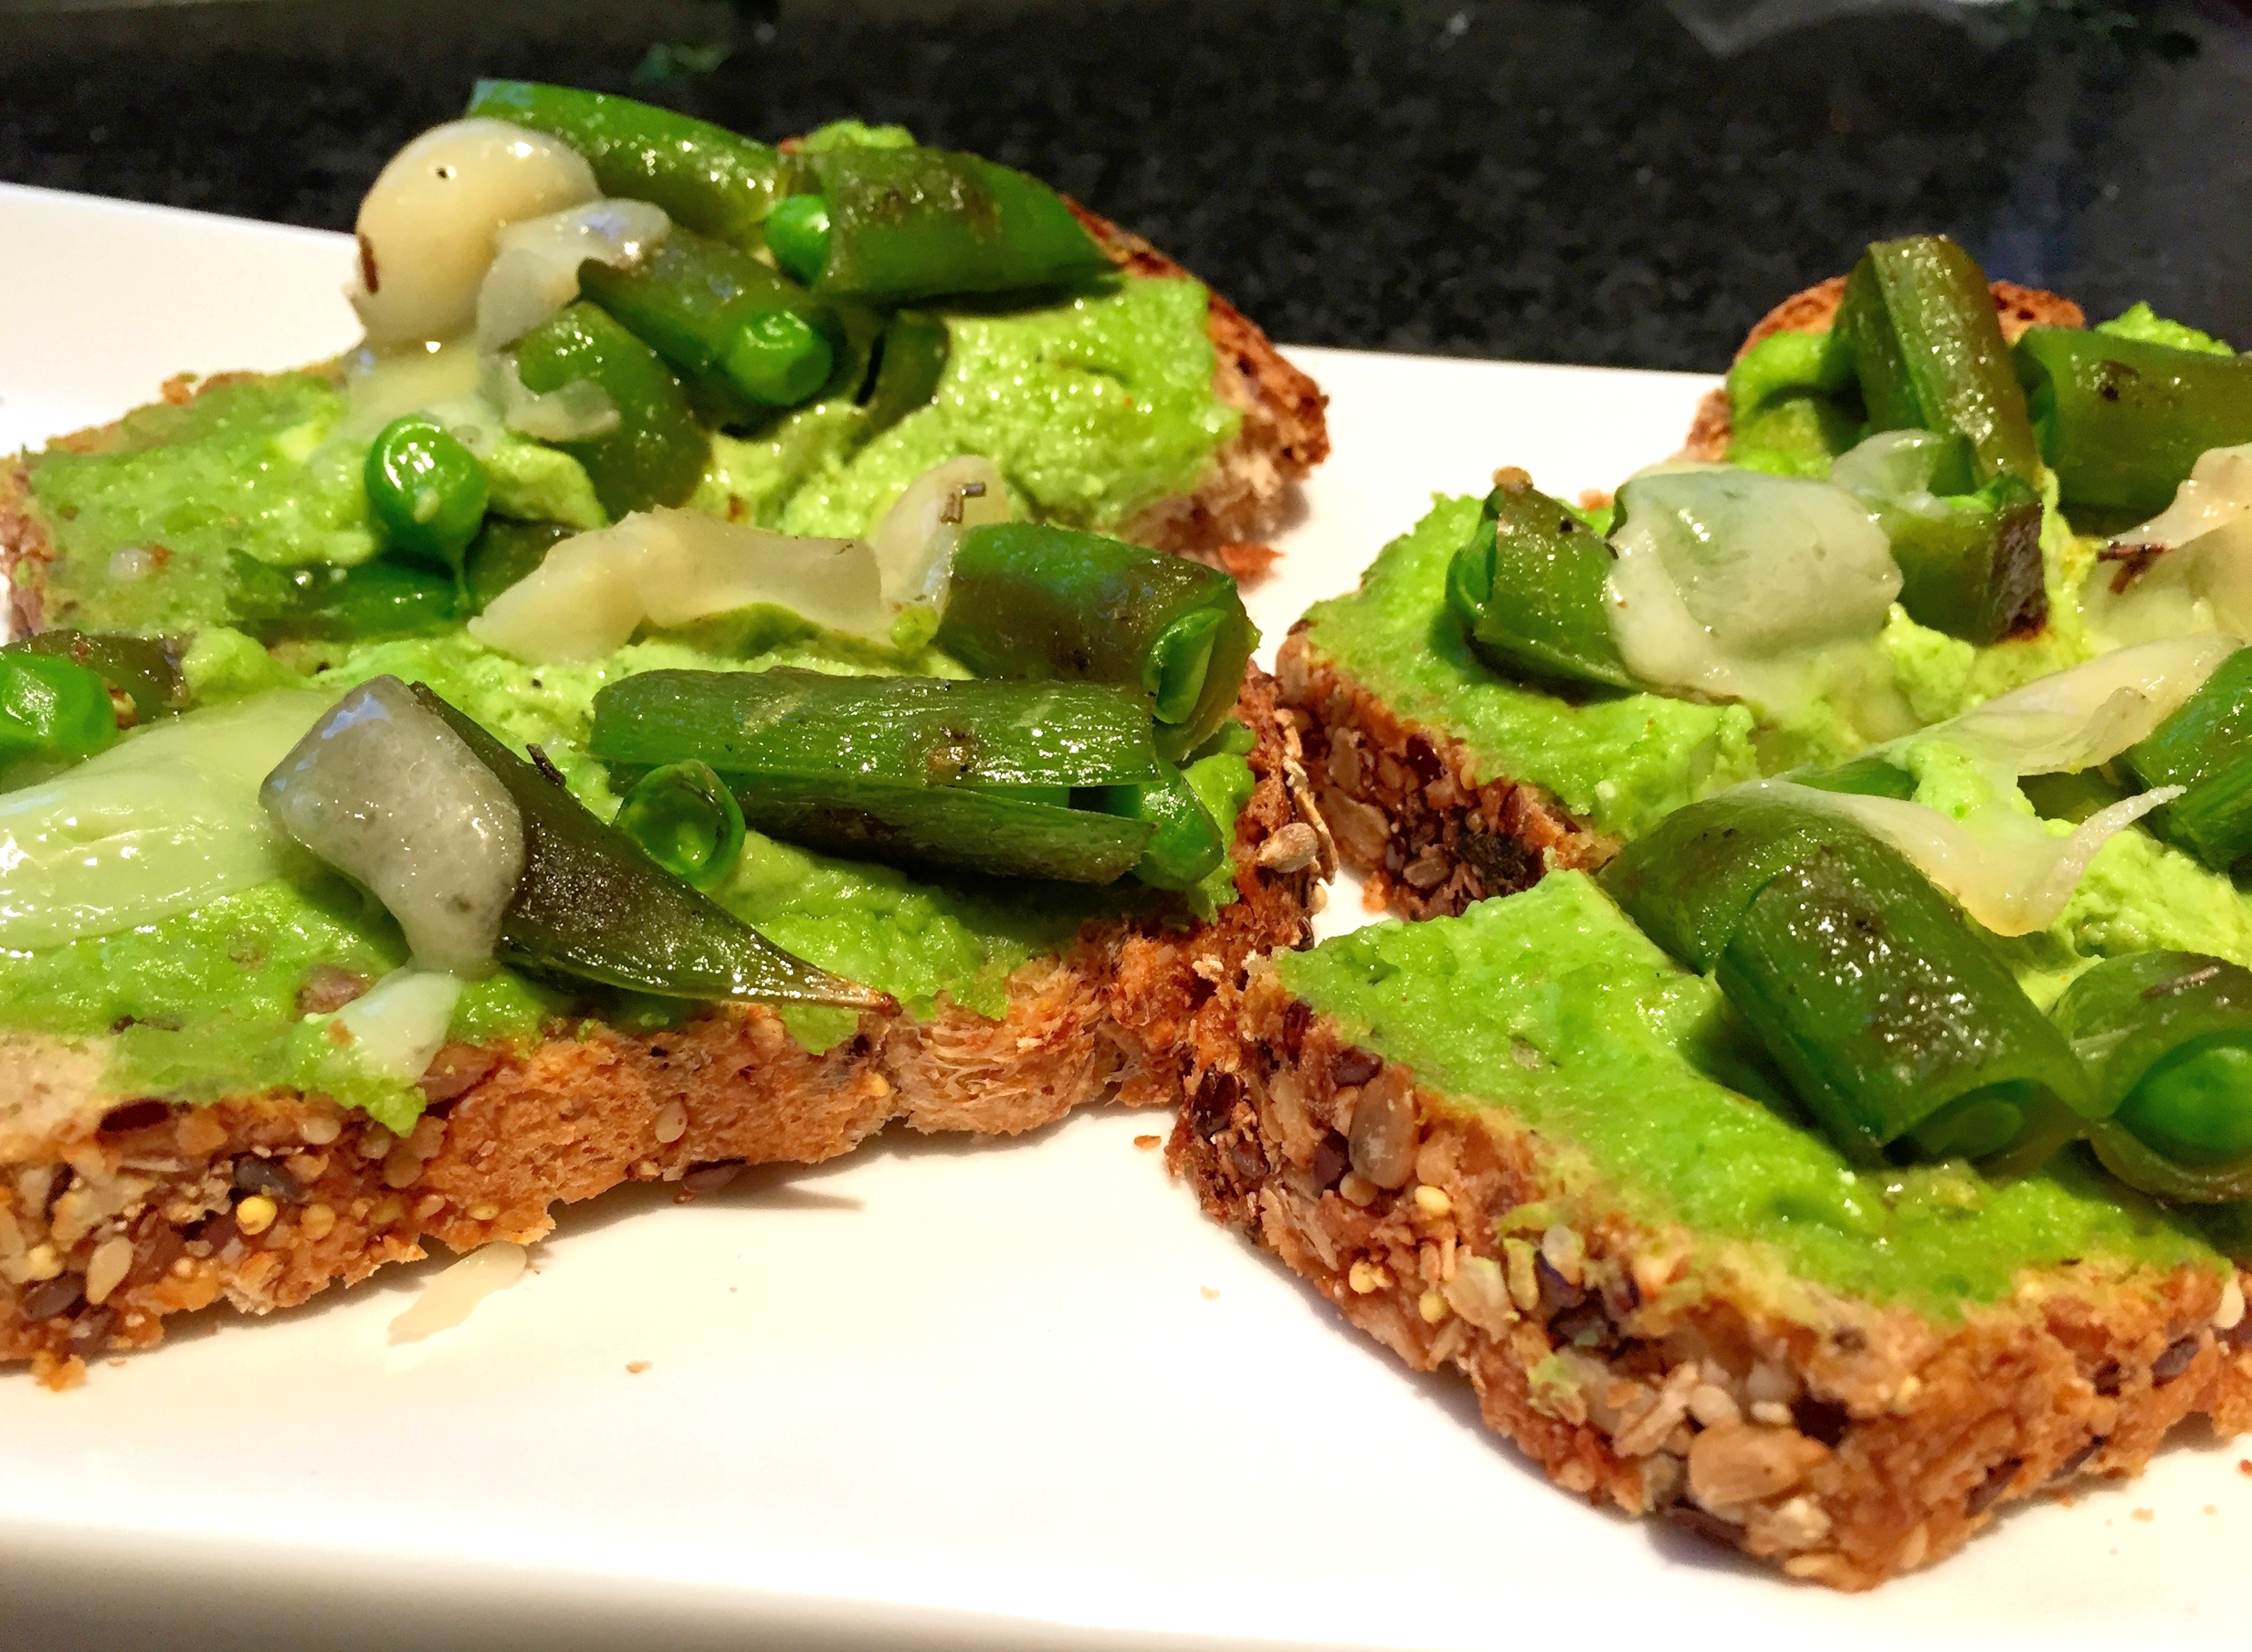 Double pea bruschetta with cheese